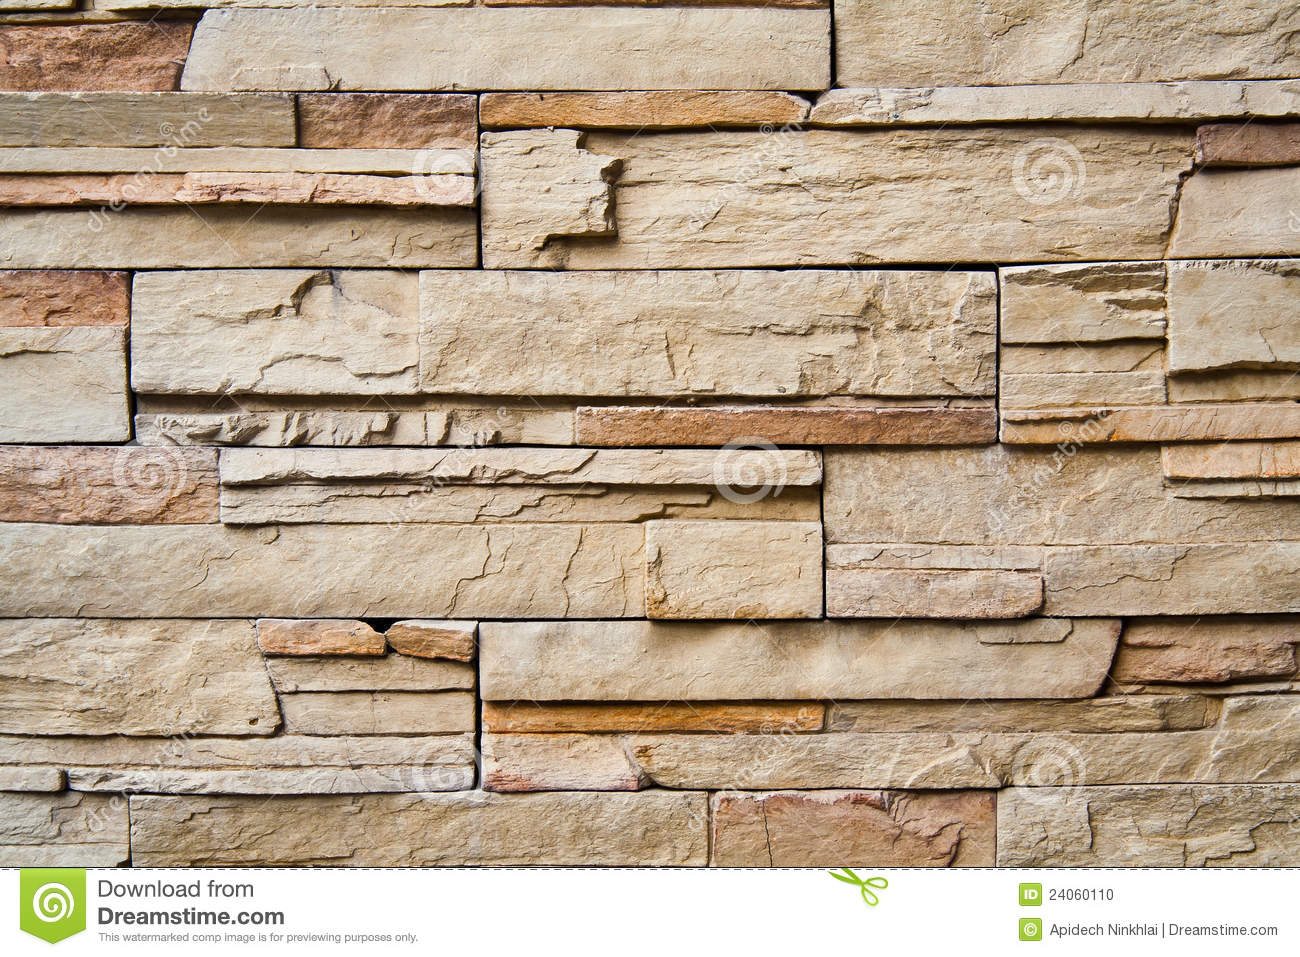 designed pattern and texture of modern wall stock photo - image